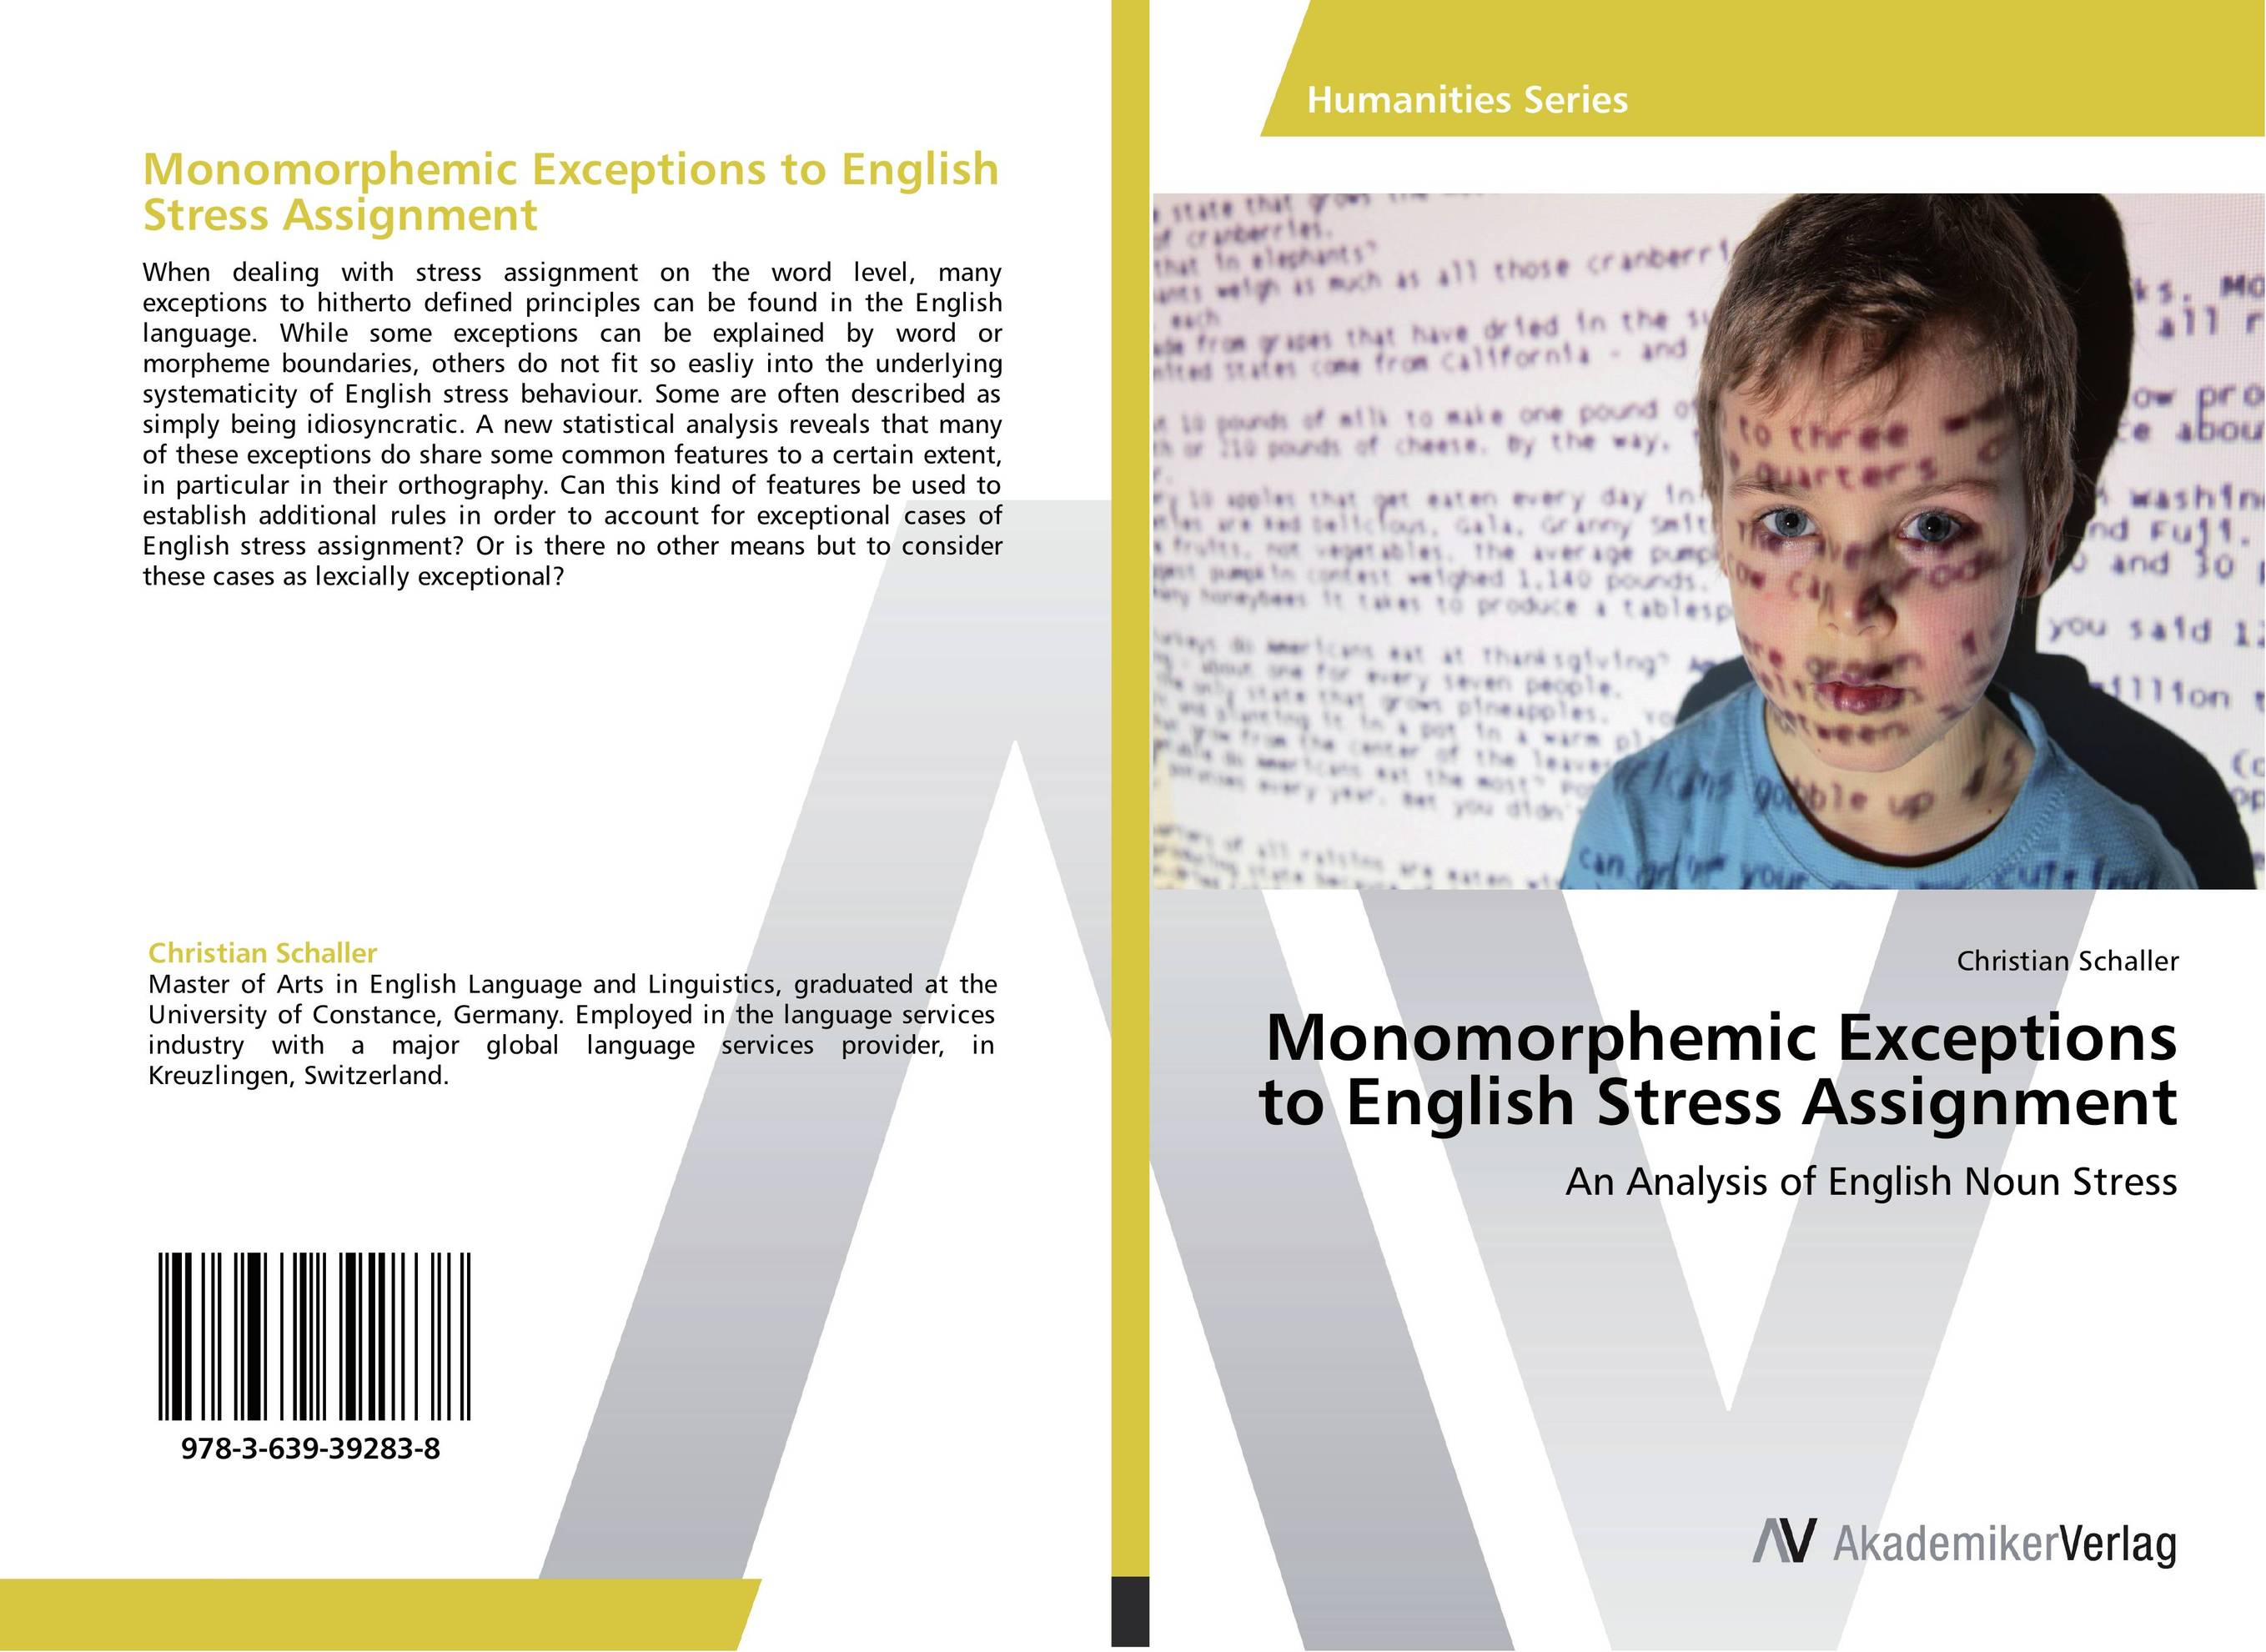 Monomorphemic Exceptions to English Stress Assignment monomorphemic exceptions to english stress assignment